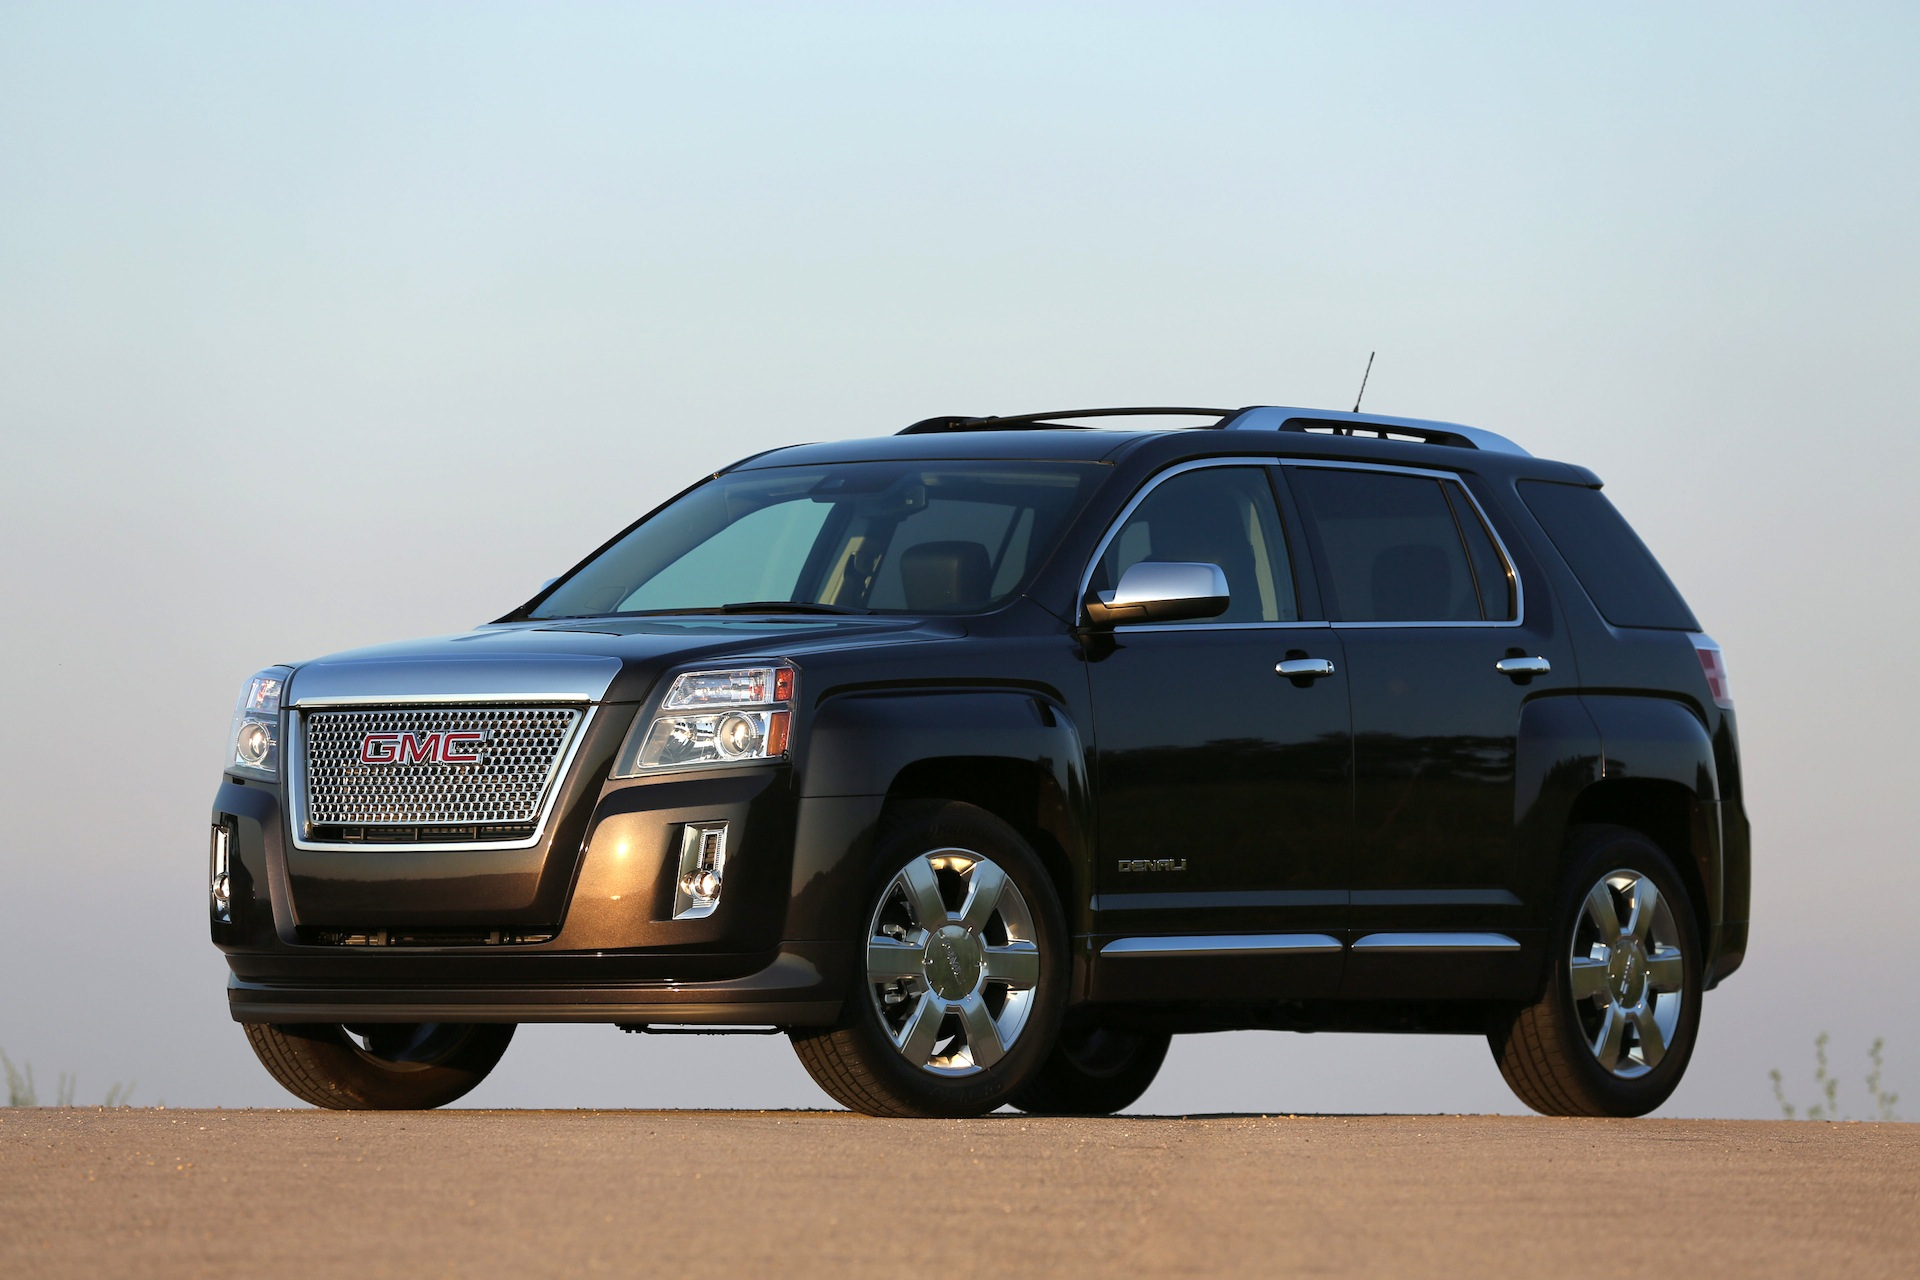 2014 gmc terrain safety review and crash test ratings. Black Bedroom Furniture Sets. Home Design Ideas